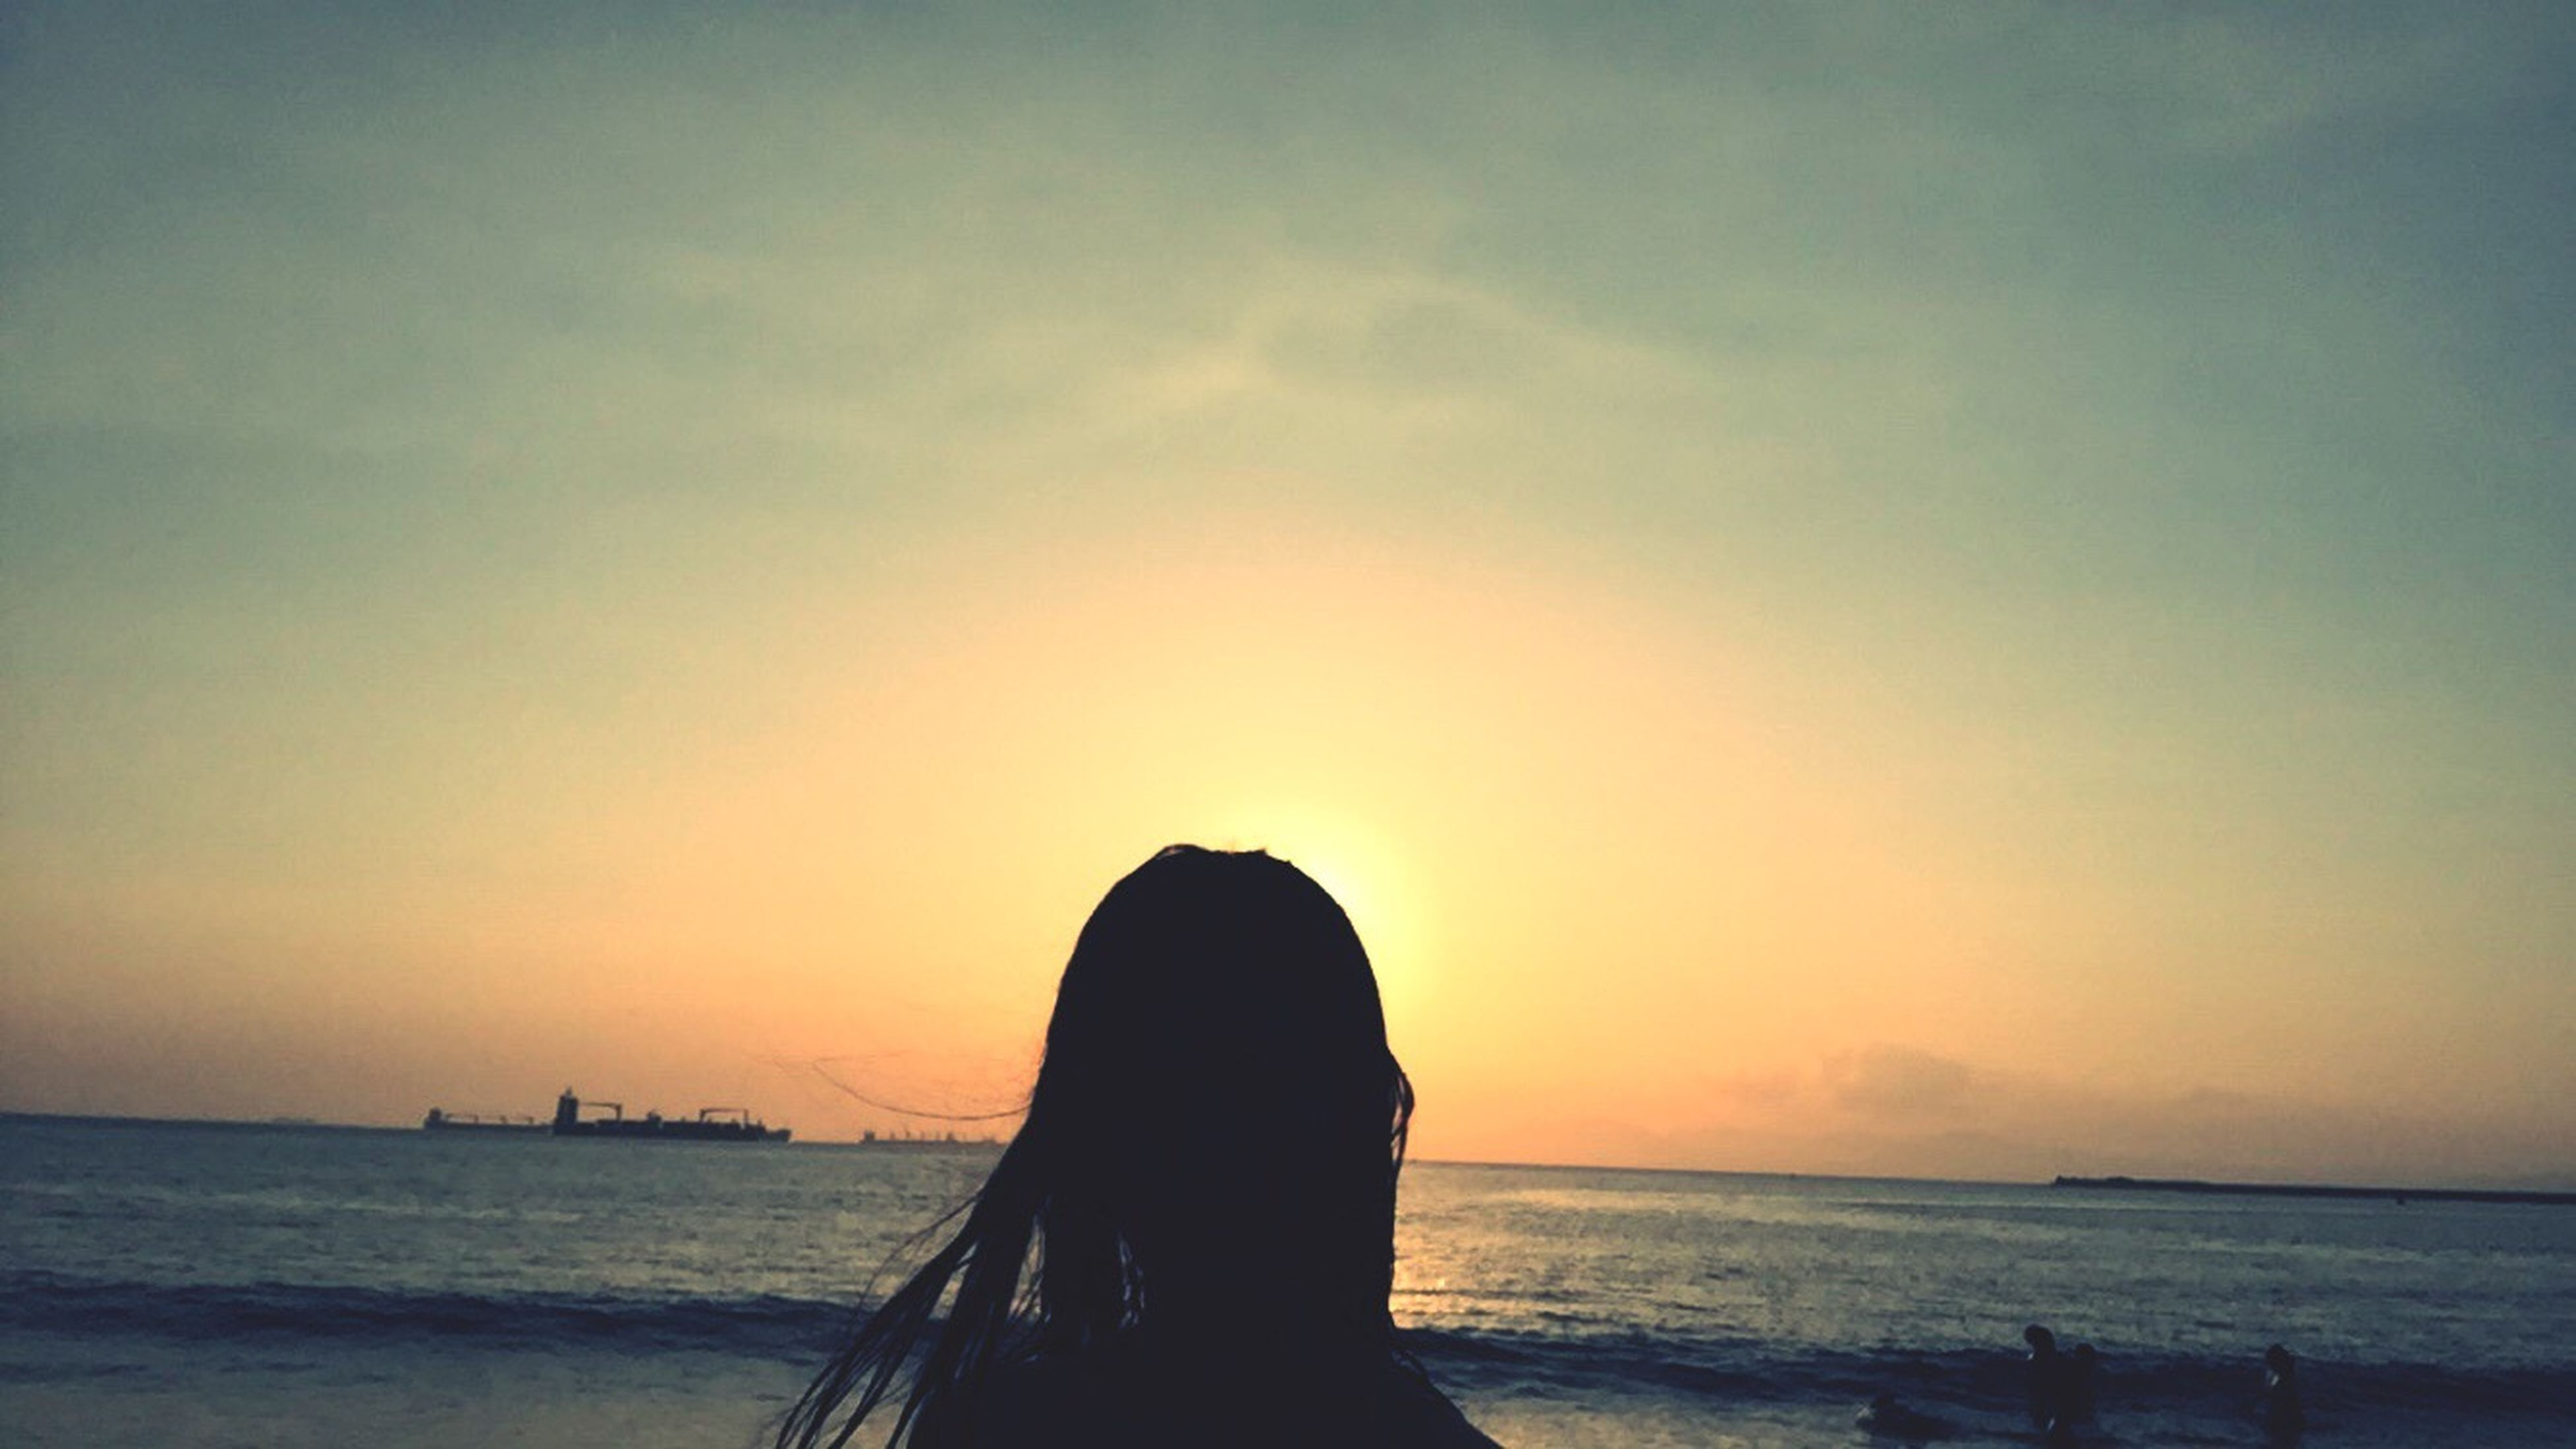 sea, water, horizon over water, sunset, scenics, silhouette, sky, tranquility, beauty in nature, tranquil scene, beach, orange color, idyllic, nature, standing, shore, person, lifestyles